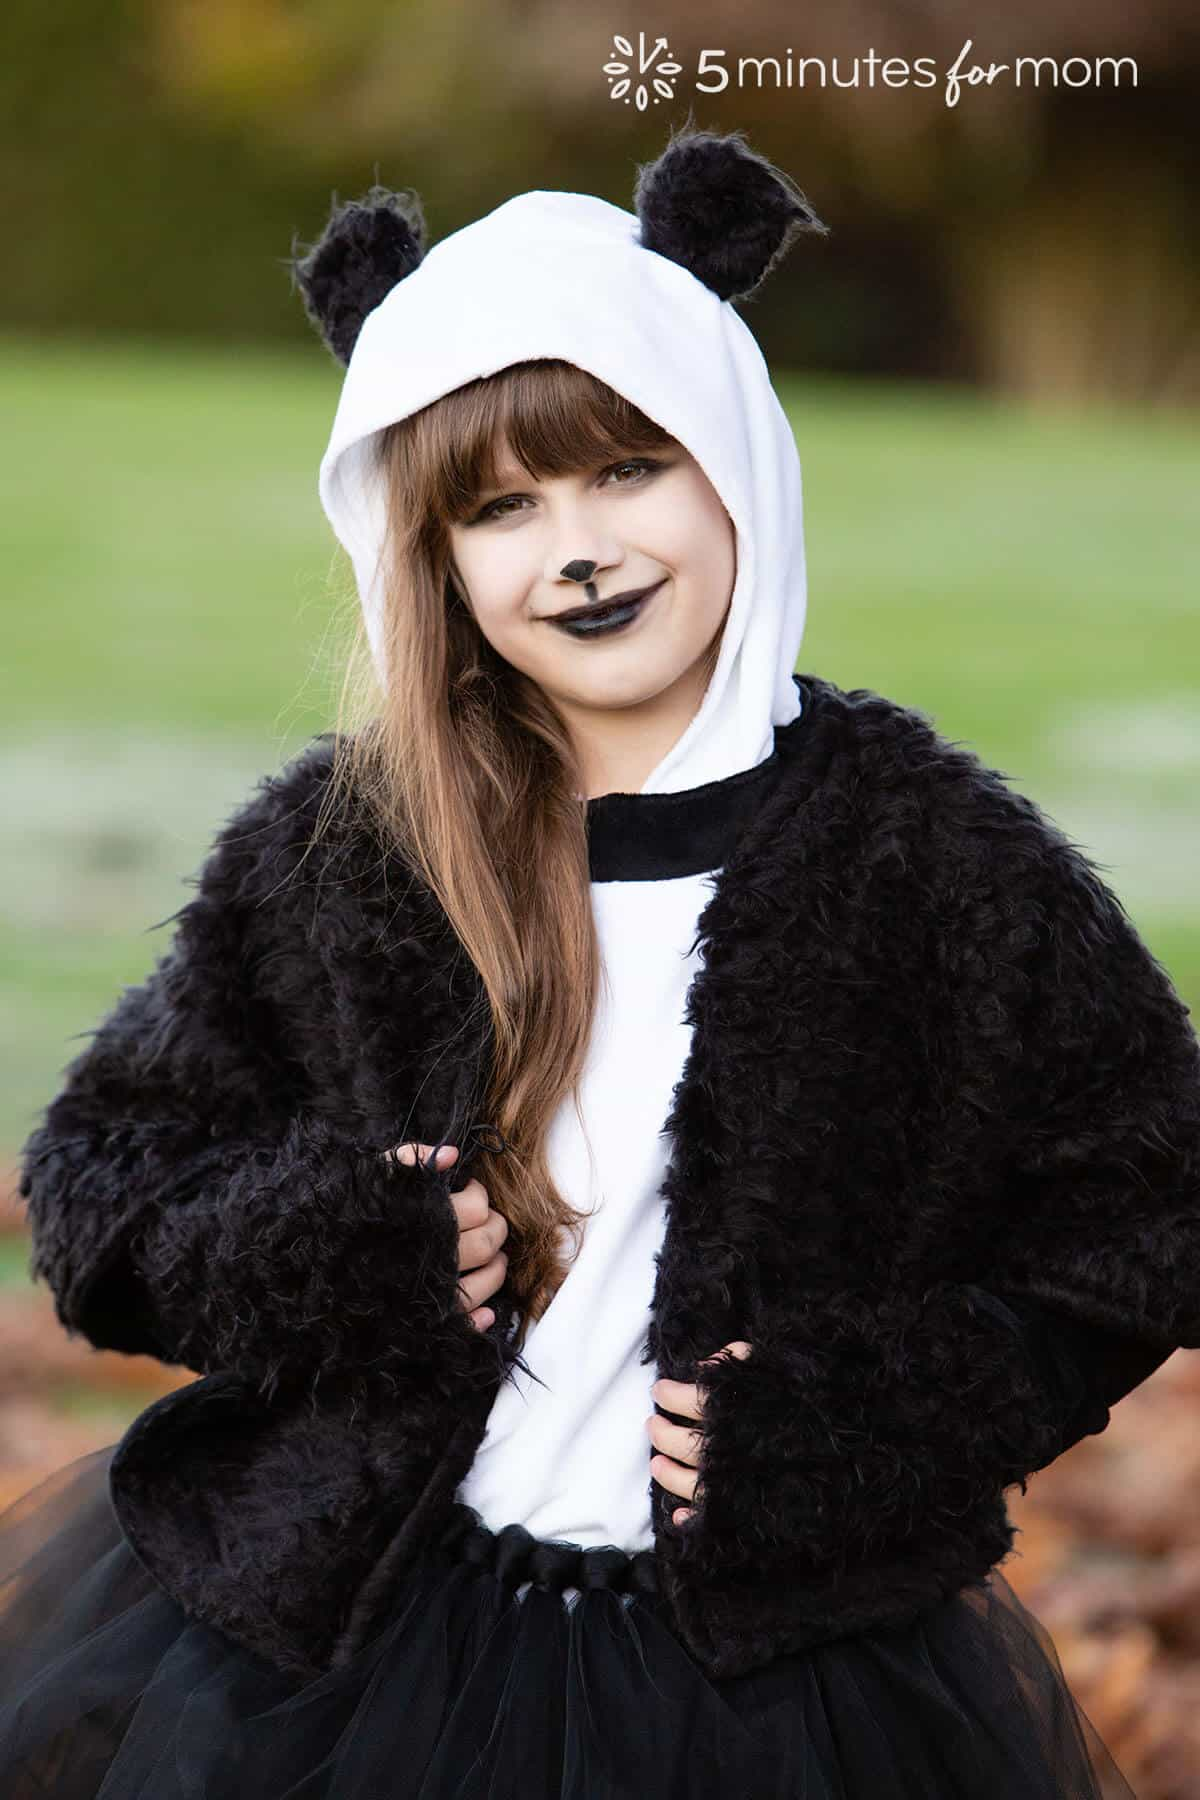 Panda costume with faux fur capelet